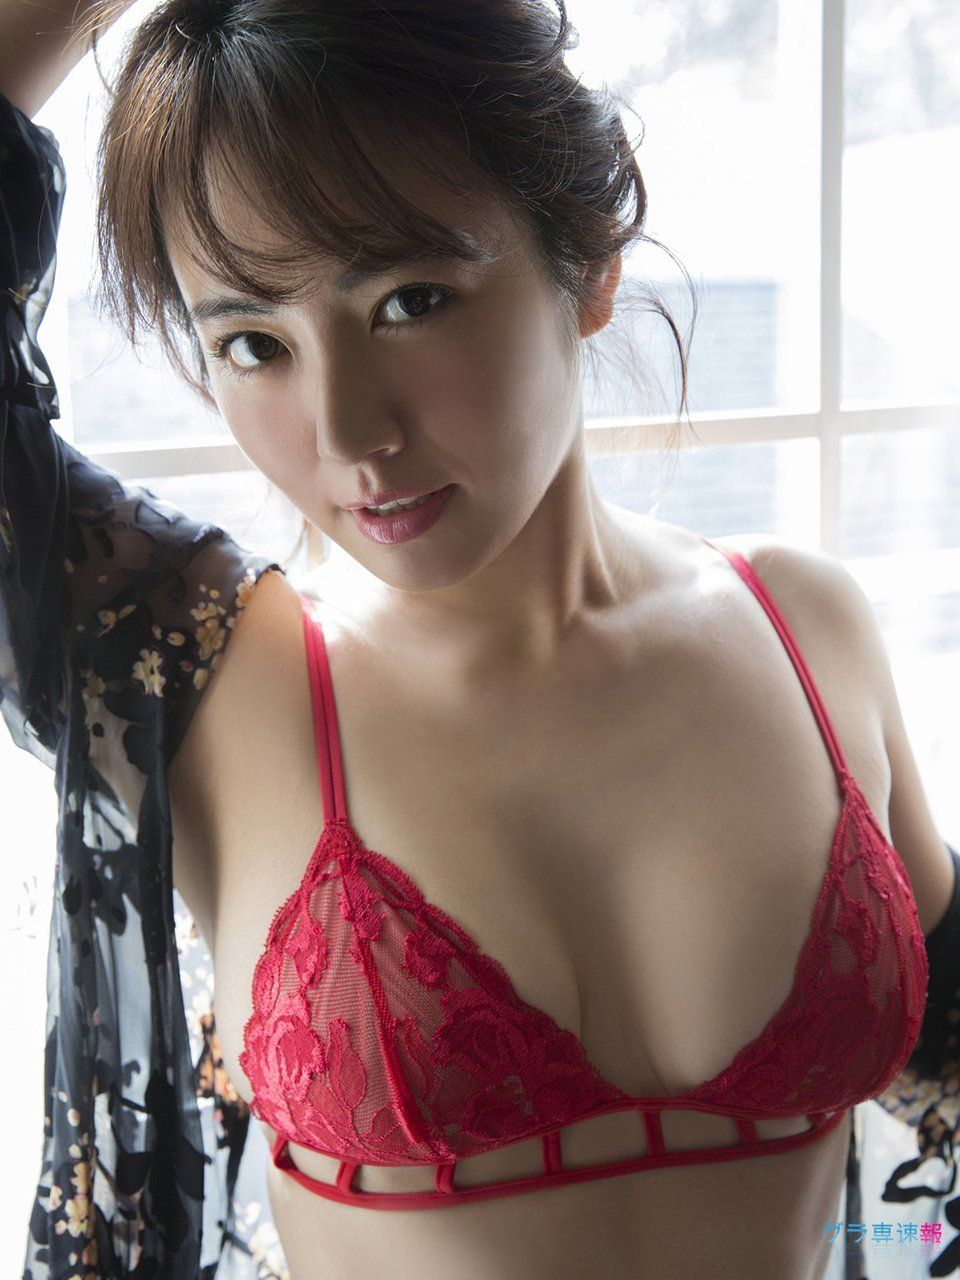 磯山さやか Sayaka Isoyama 1983 Japanese Pin Up Girl She Is